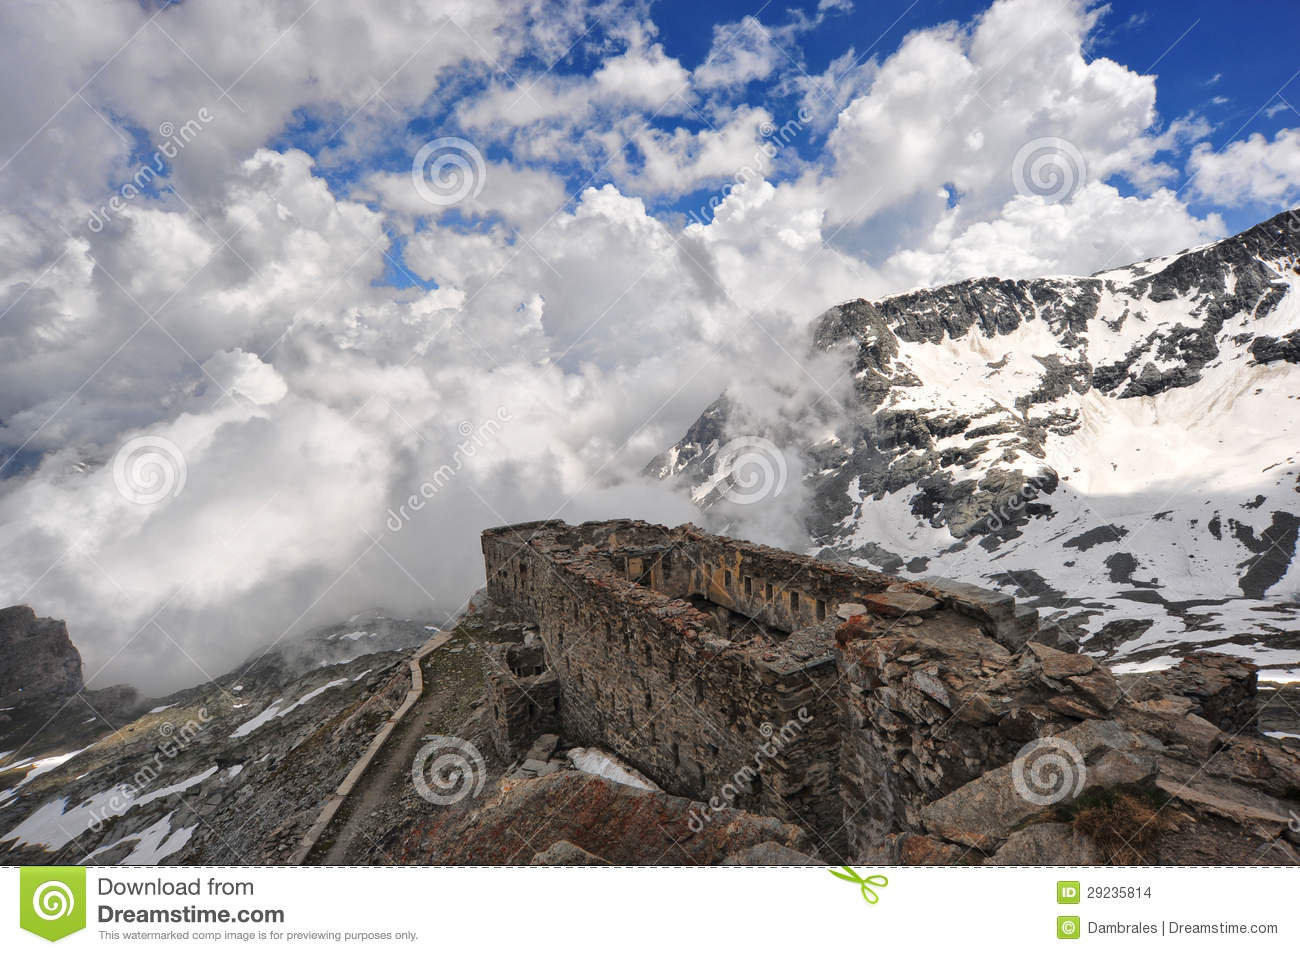 Download Forte Malamot foto de stock. Imagem de cloudy, fundo - 29235814